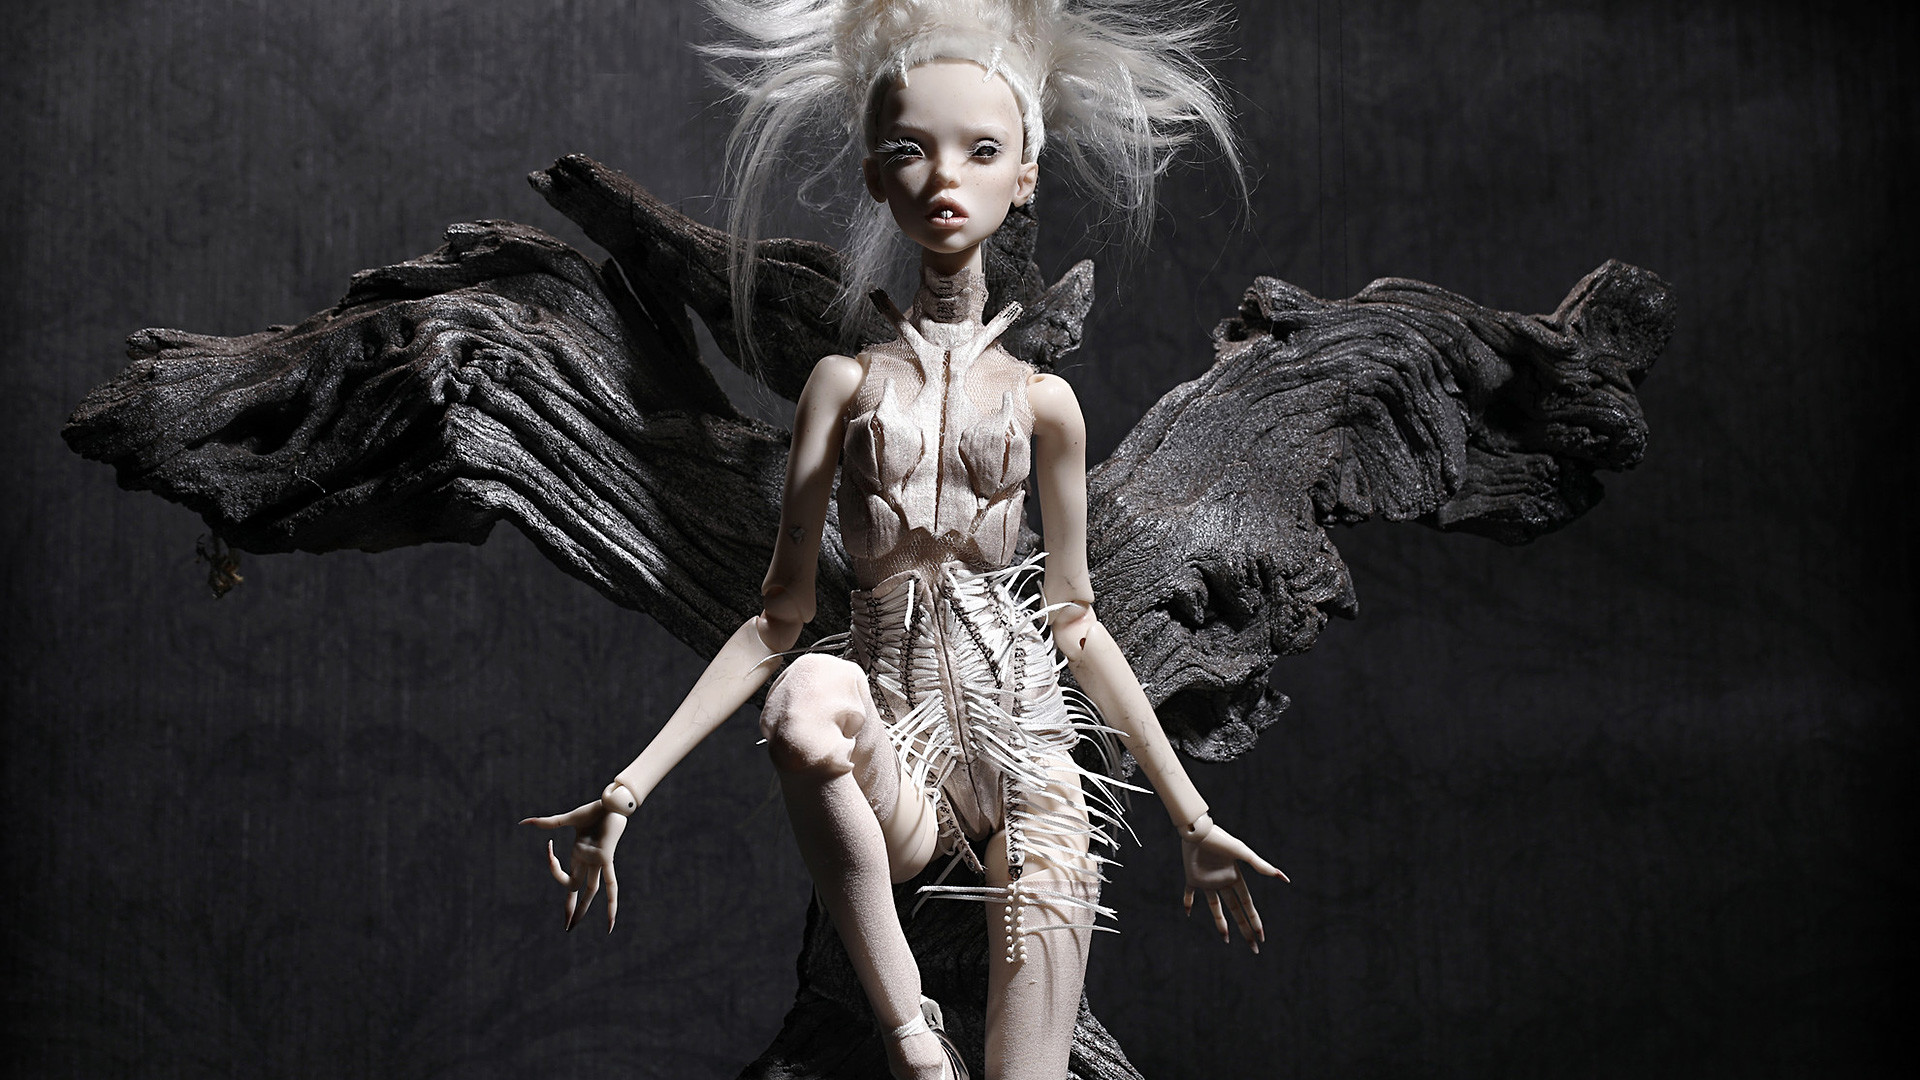 Popovy Sisters' doll inspired by 'Ugly boy' song by Yolandi Visser